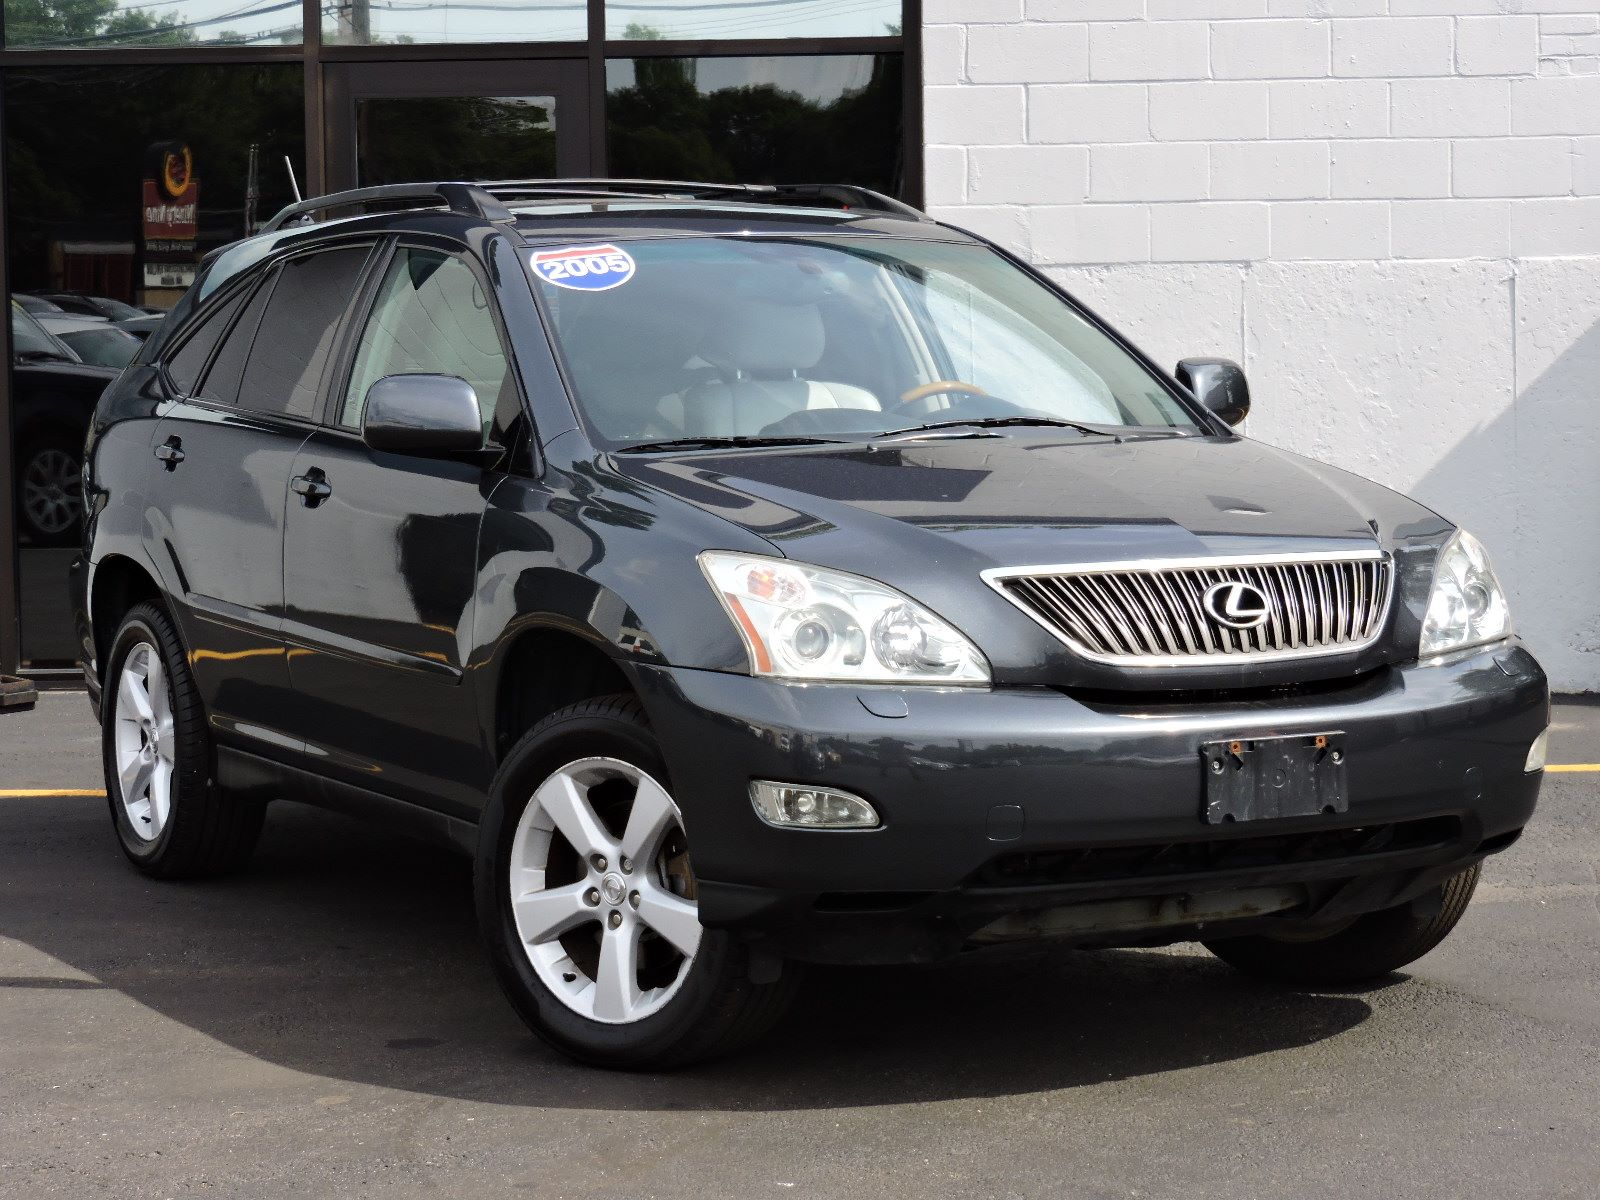 Used 2005 Lexus Rx 330 Sut At Auto House Usa Saugus Rx330 Interior All Wheel Drive